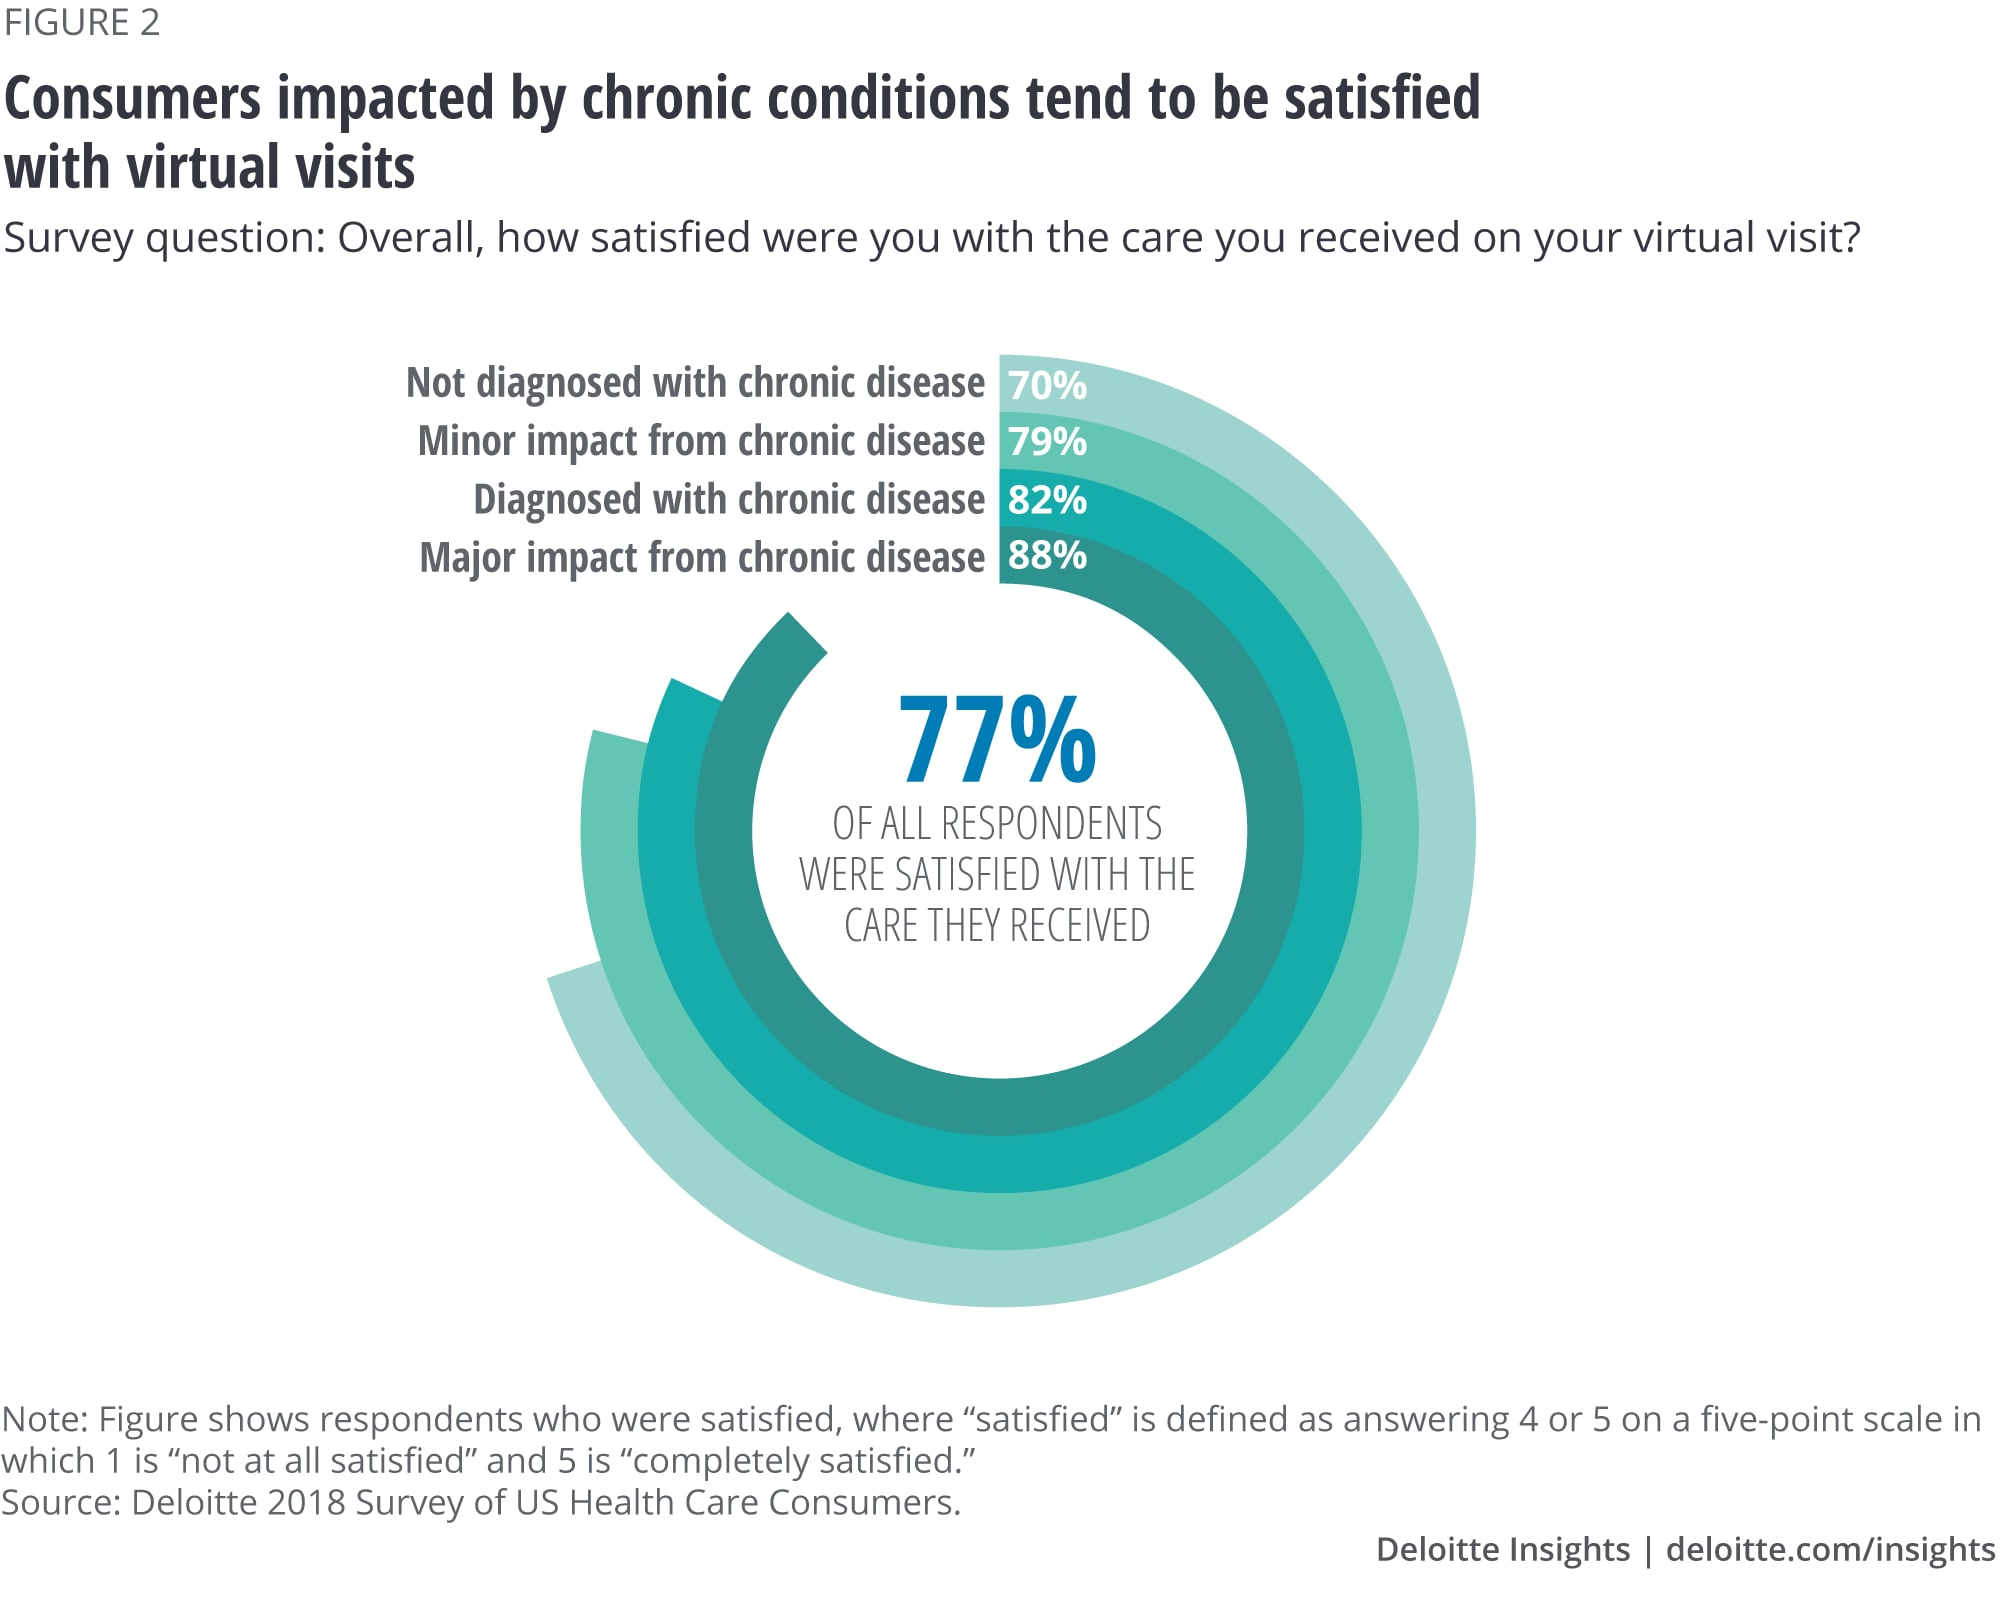 Consumers impacted by chronic conditions tend to be satisfied with virtual visits